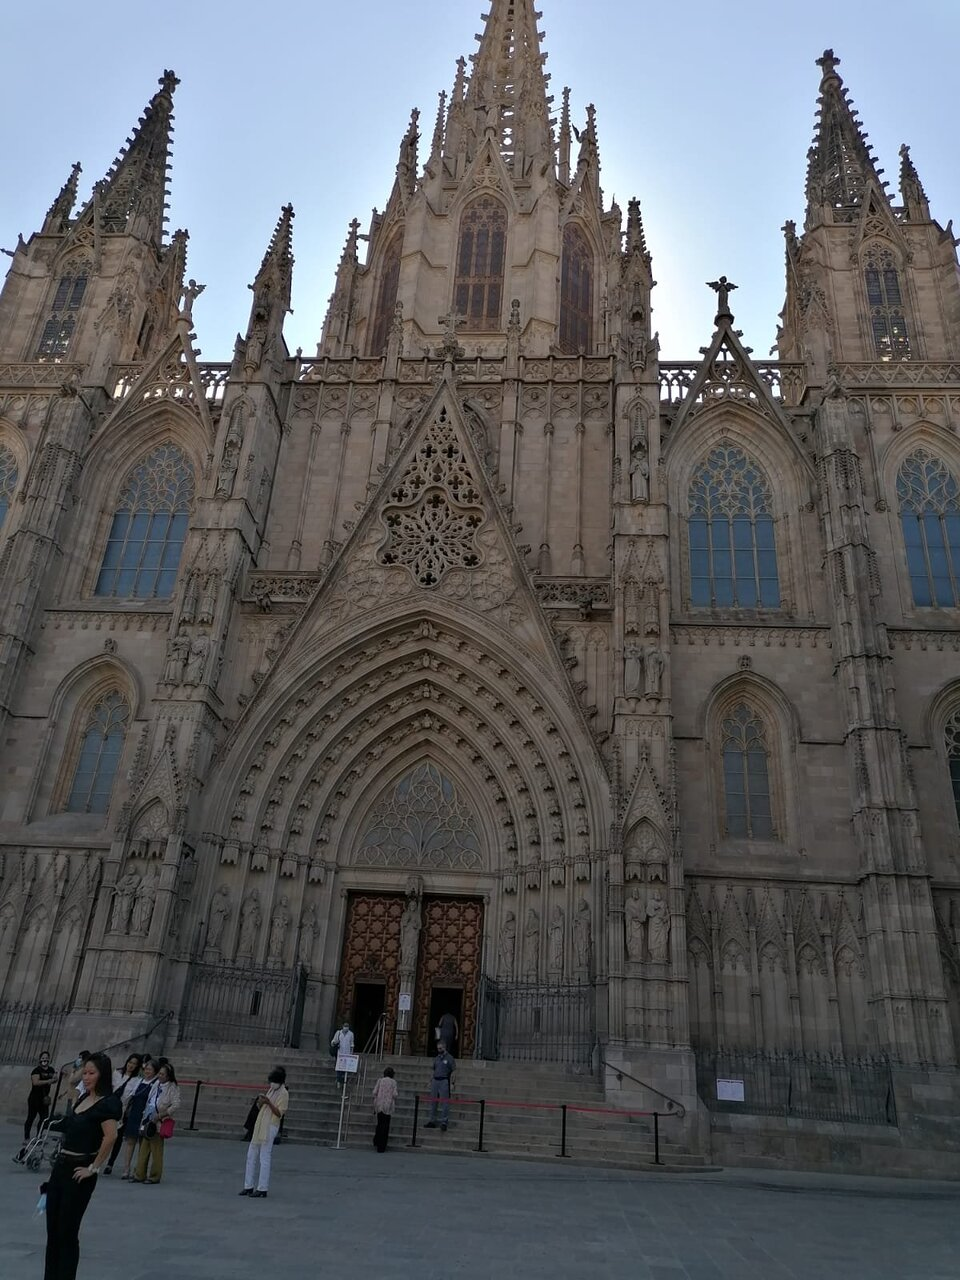 barcelona cathedral 2020 all you need to know before you go with photos tripadvisor barcelona cathedral 2020 all you need